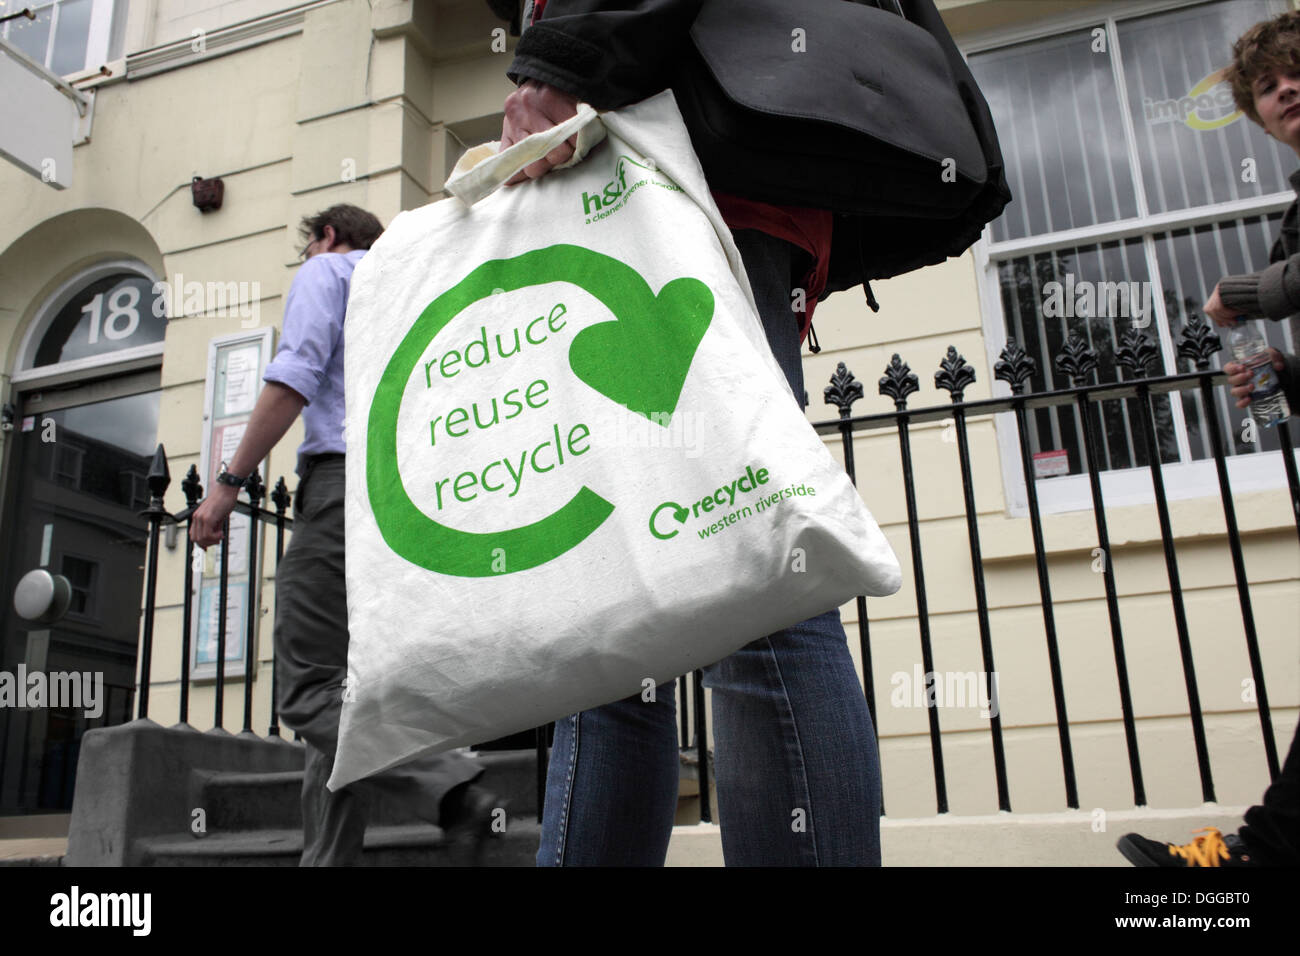 Not a plastic bag: 'reduce reuse recycle' slogan on a cotton shopping bag. - Stock Image